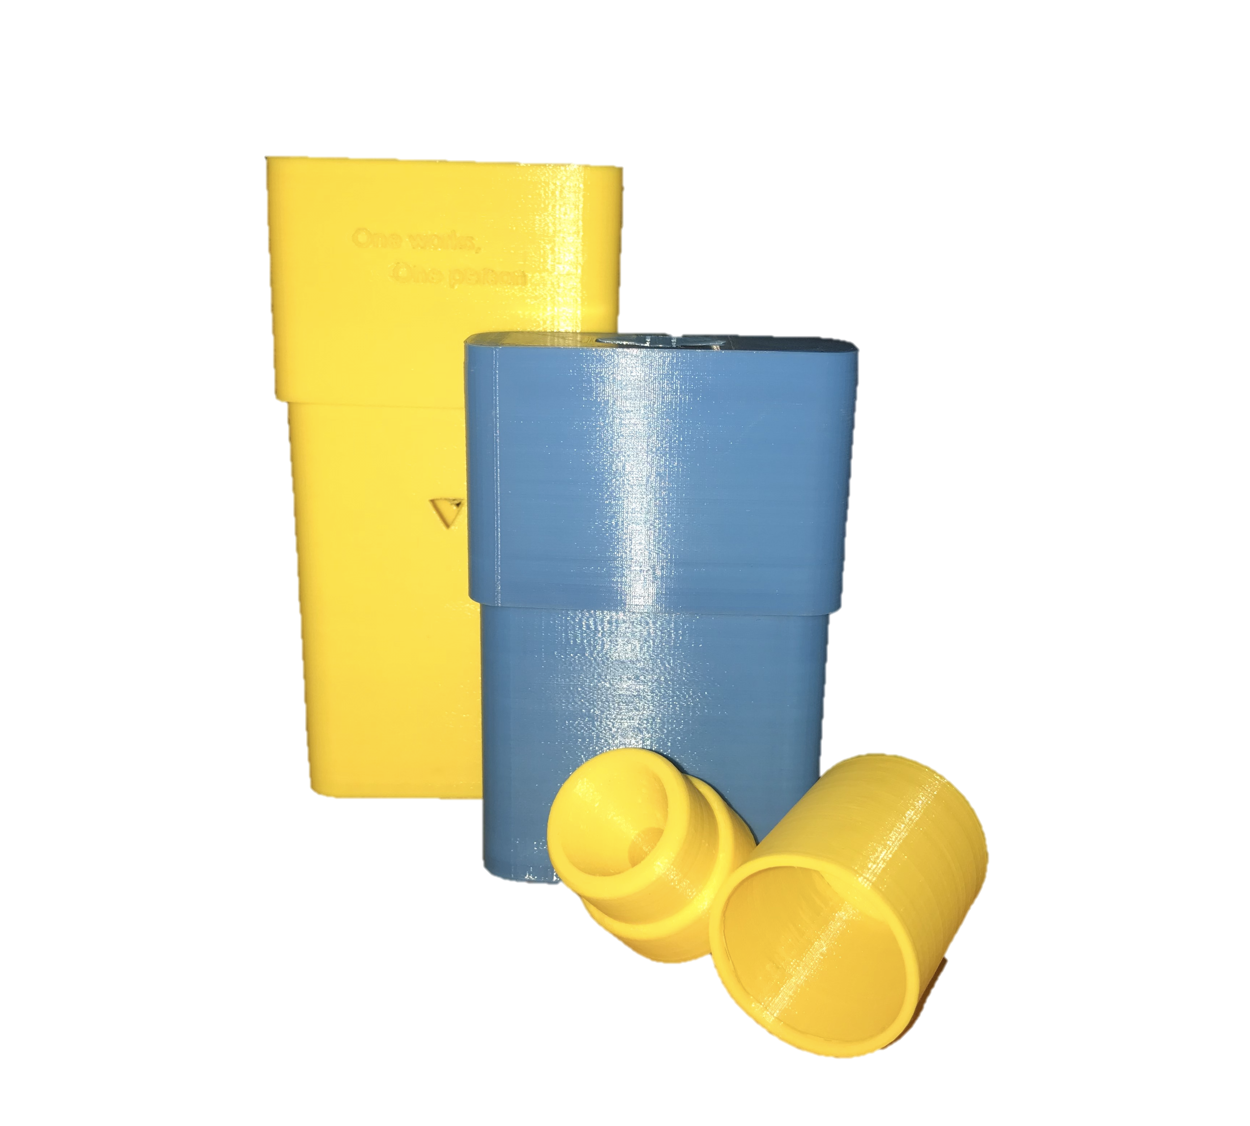 Our sharps bin & attachment... - come to a combined cost of €3.70; with the personal bin costing €2.92 to fabricate and the sharps attachment and lock only costing €0.78.